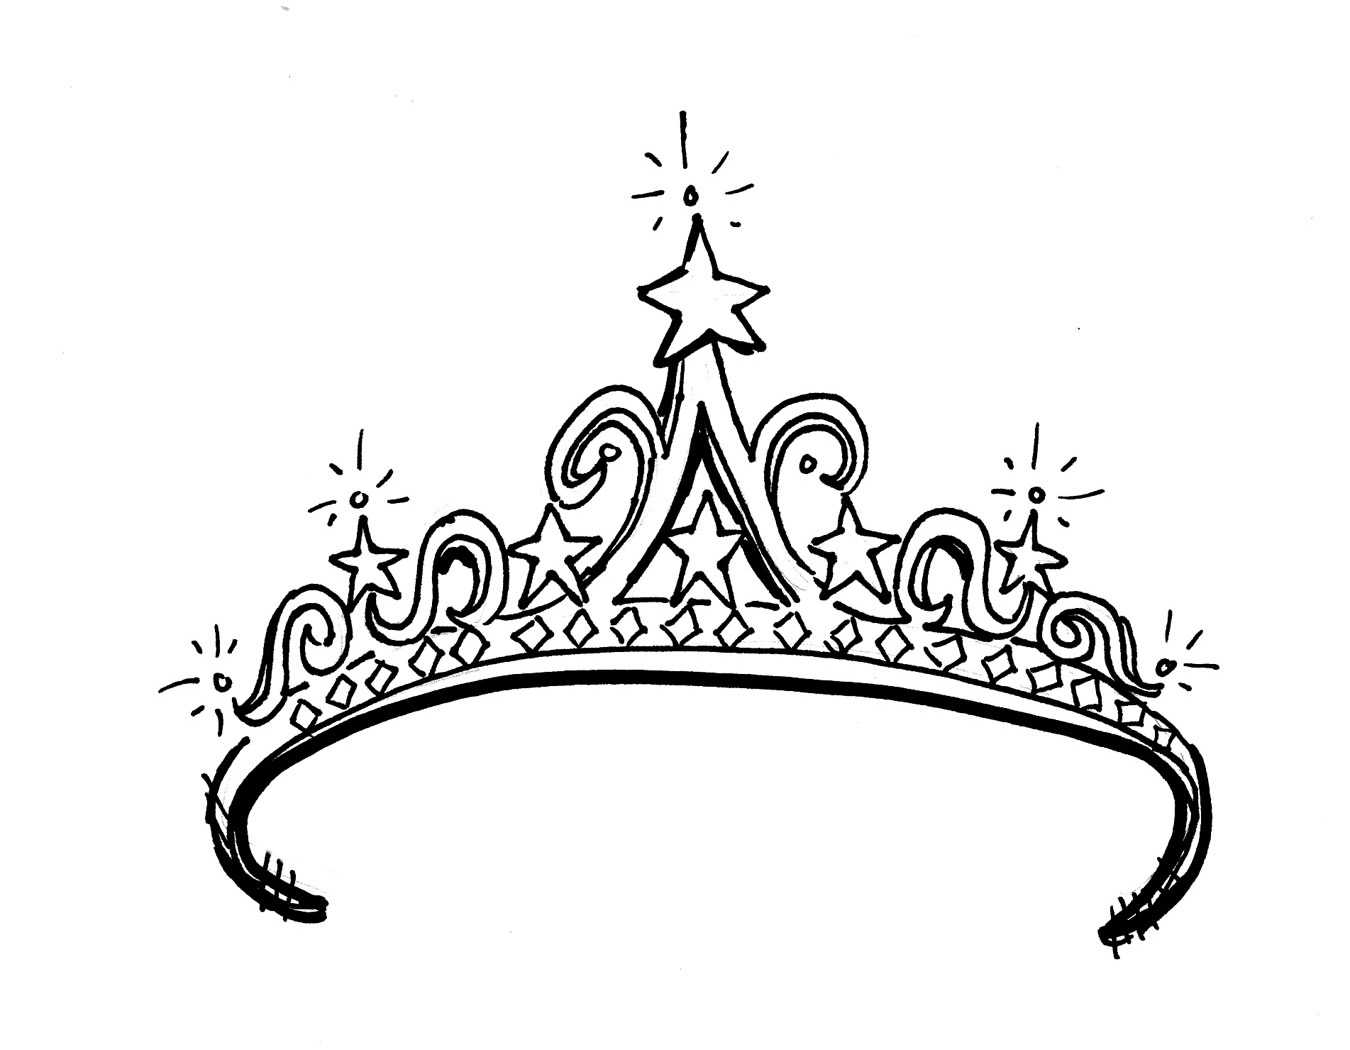 353673376959816216 together with 2012 11 01 archive together with Simple Crown Tattoo also Cartoon Princess Tiara additionally 79798224624431558. on disney crown silhouette